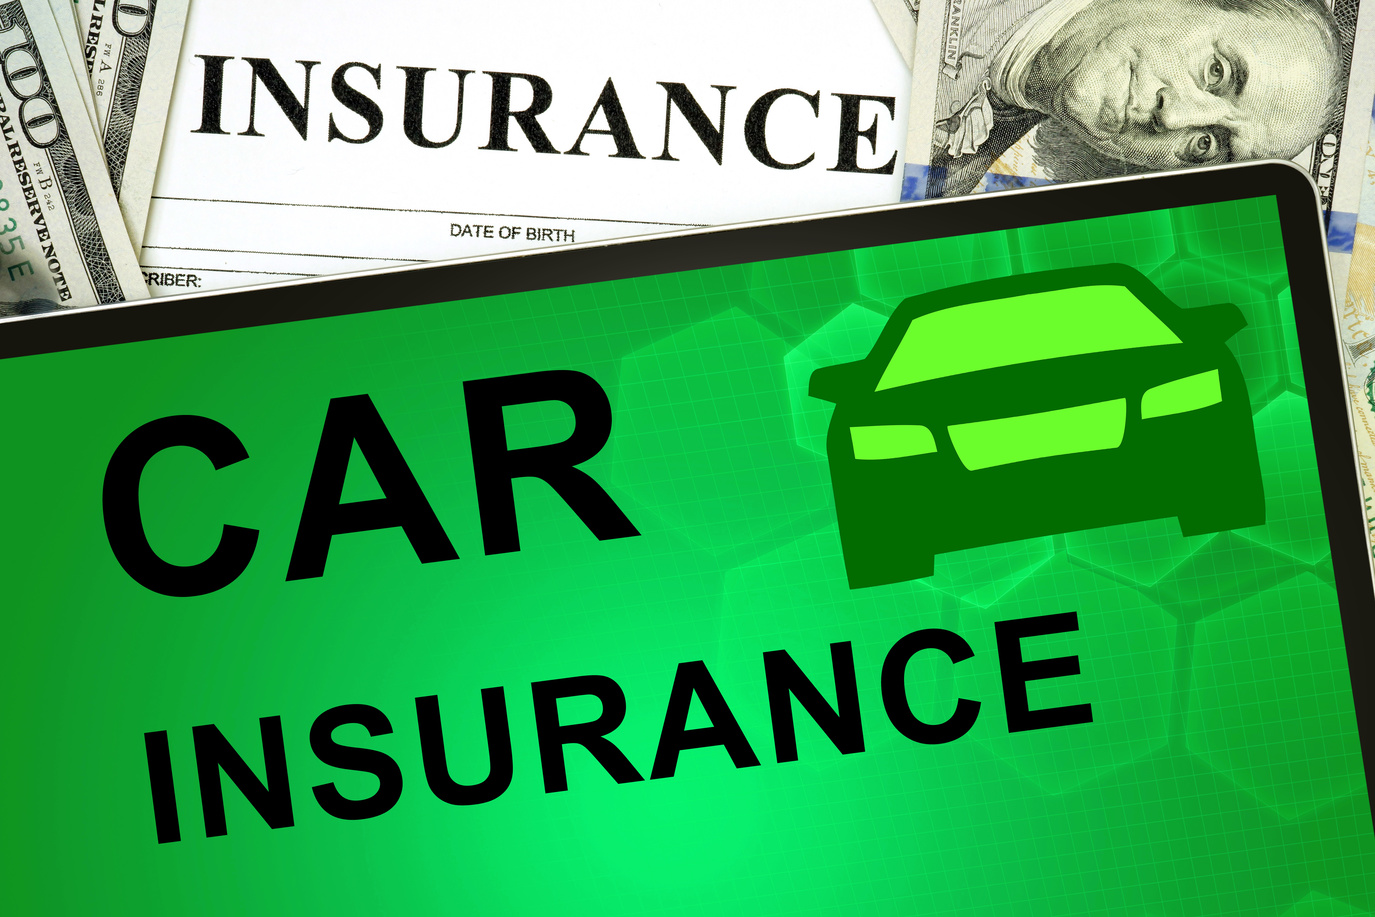 How to get cheaper insurance on my car